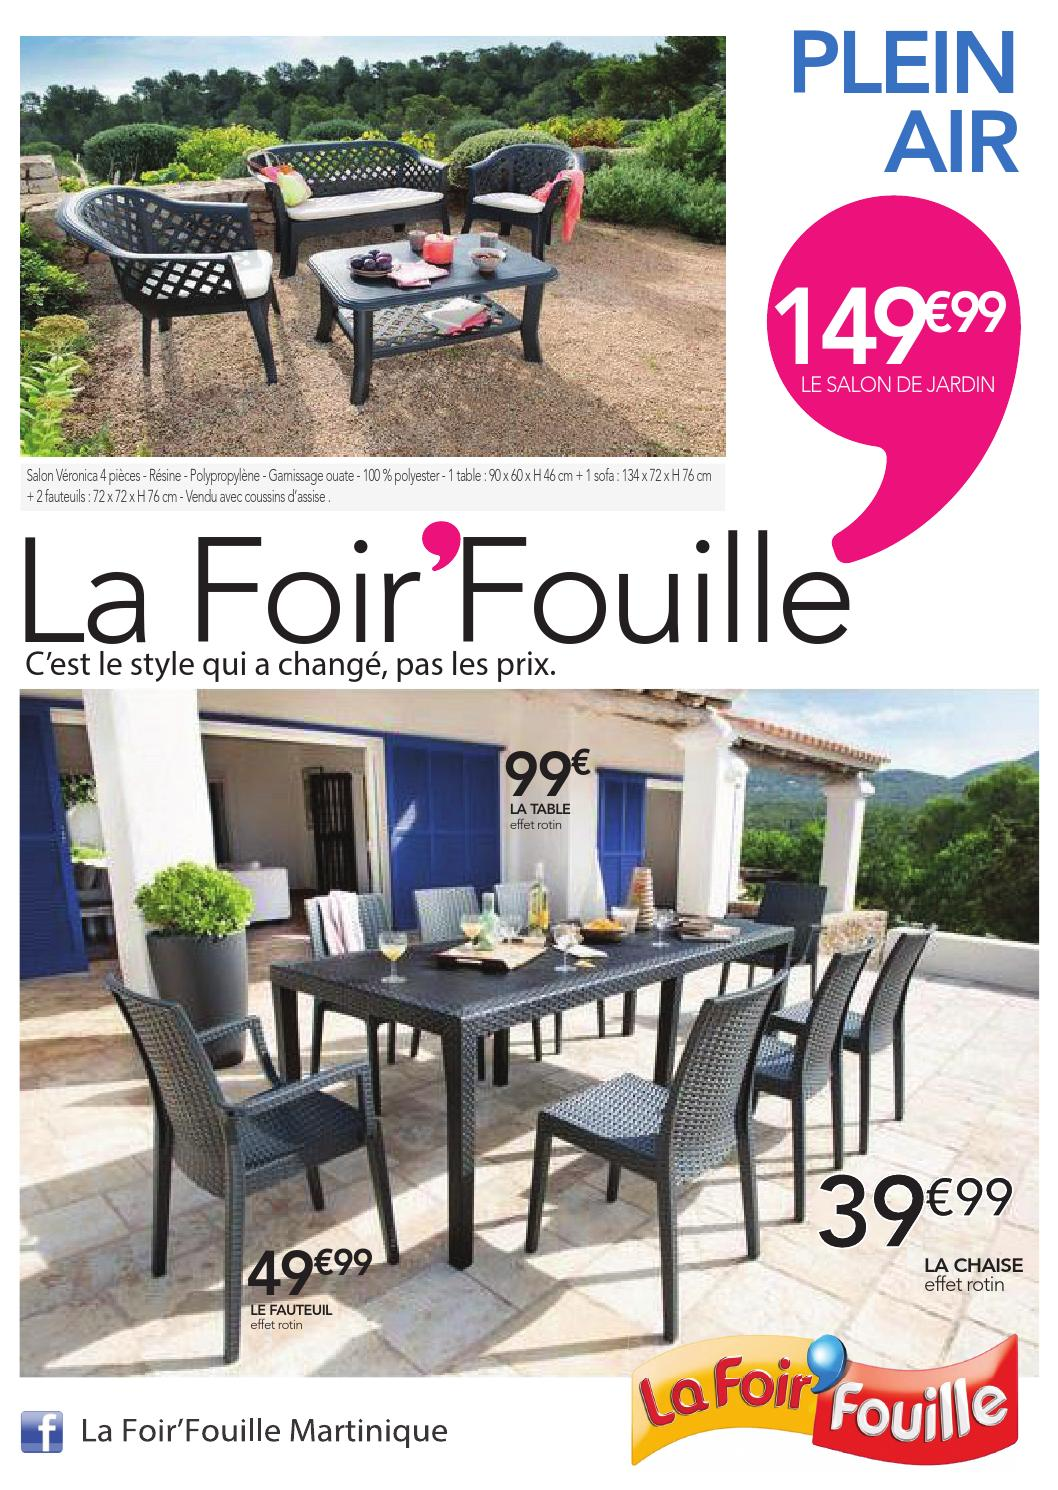 Catalogue plein air by la foir 39 fouille issuu - Bureau la foir fouille ...